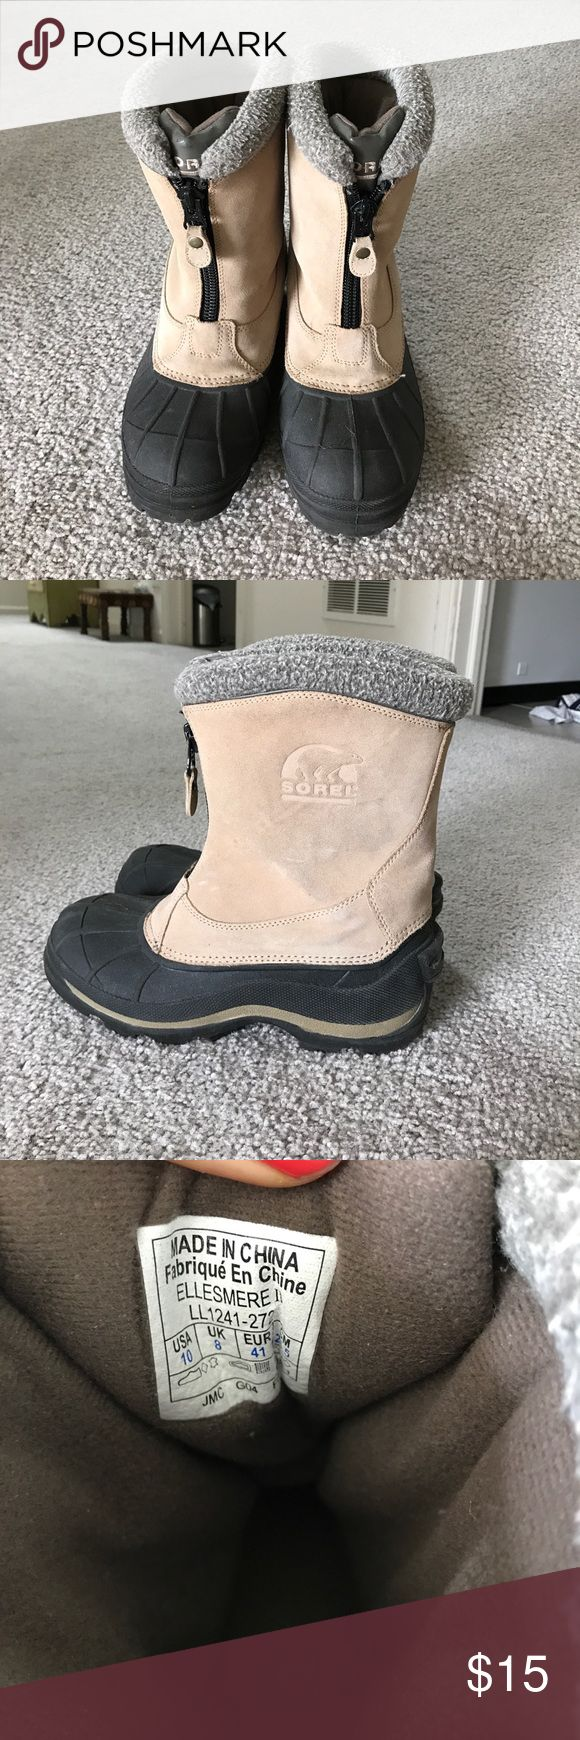 Sorel Winter Boots Good condition with some dirty spots. Zip up. Lightly worn because they were too big for me. Warm! (trust me, I live in Chicago). Great tread on bottom. They are perfect to slip on and go shovel or run some errands! Sorel Shoes Winter & Rain Boots